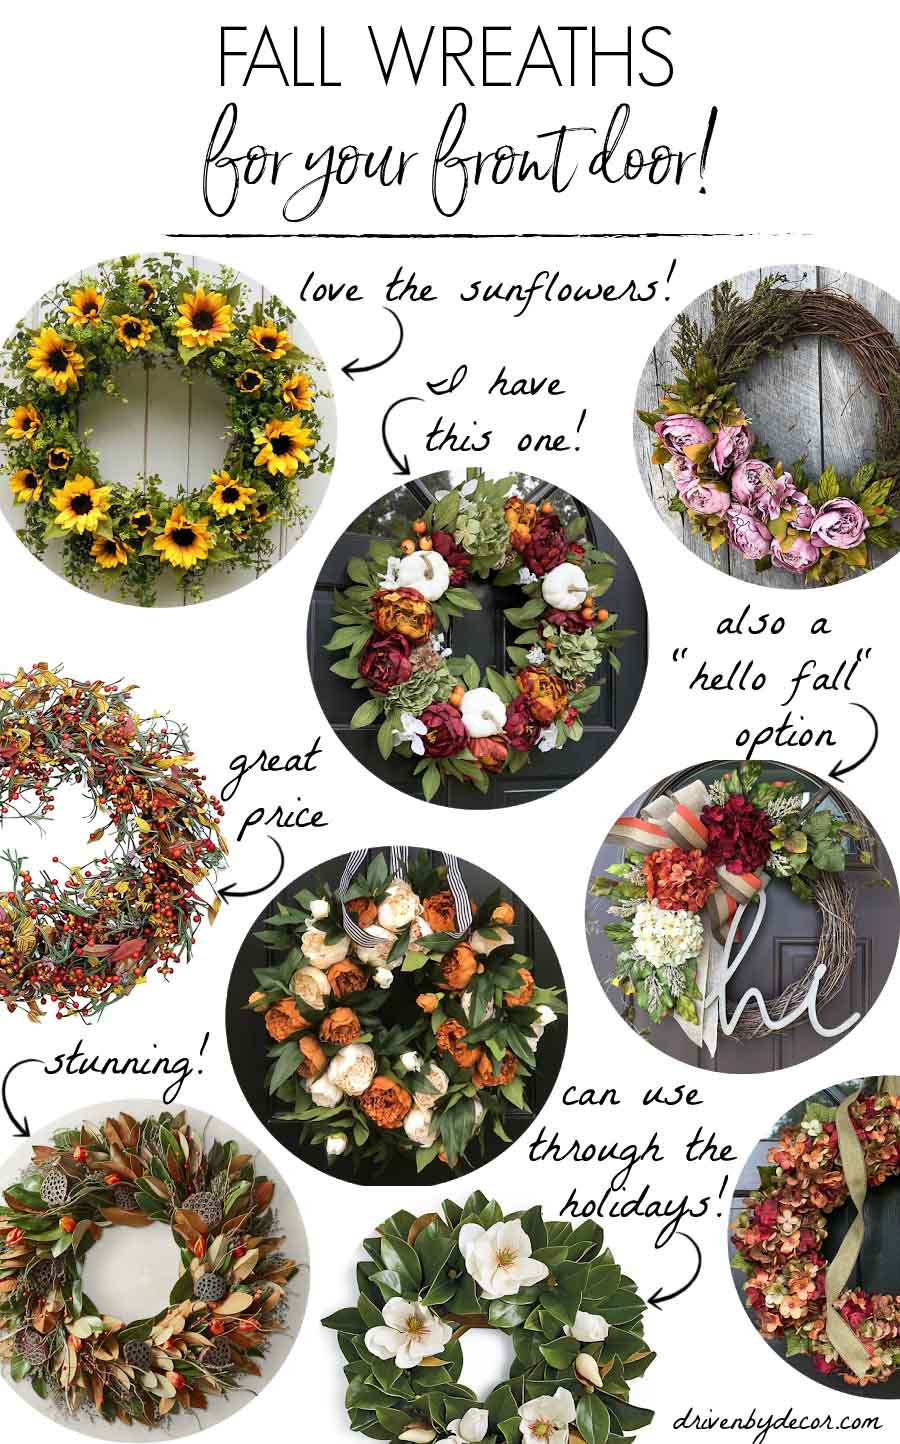 Fall wreaths for your front door - so many gorgeous options!